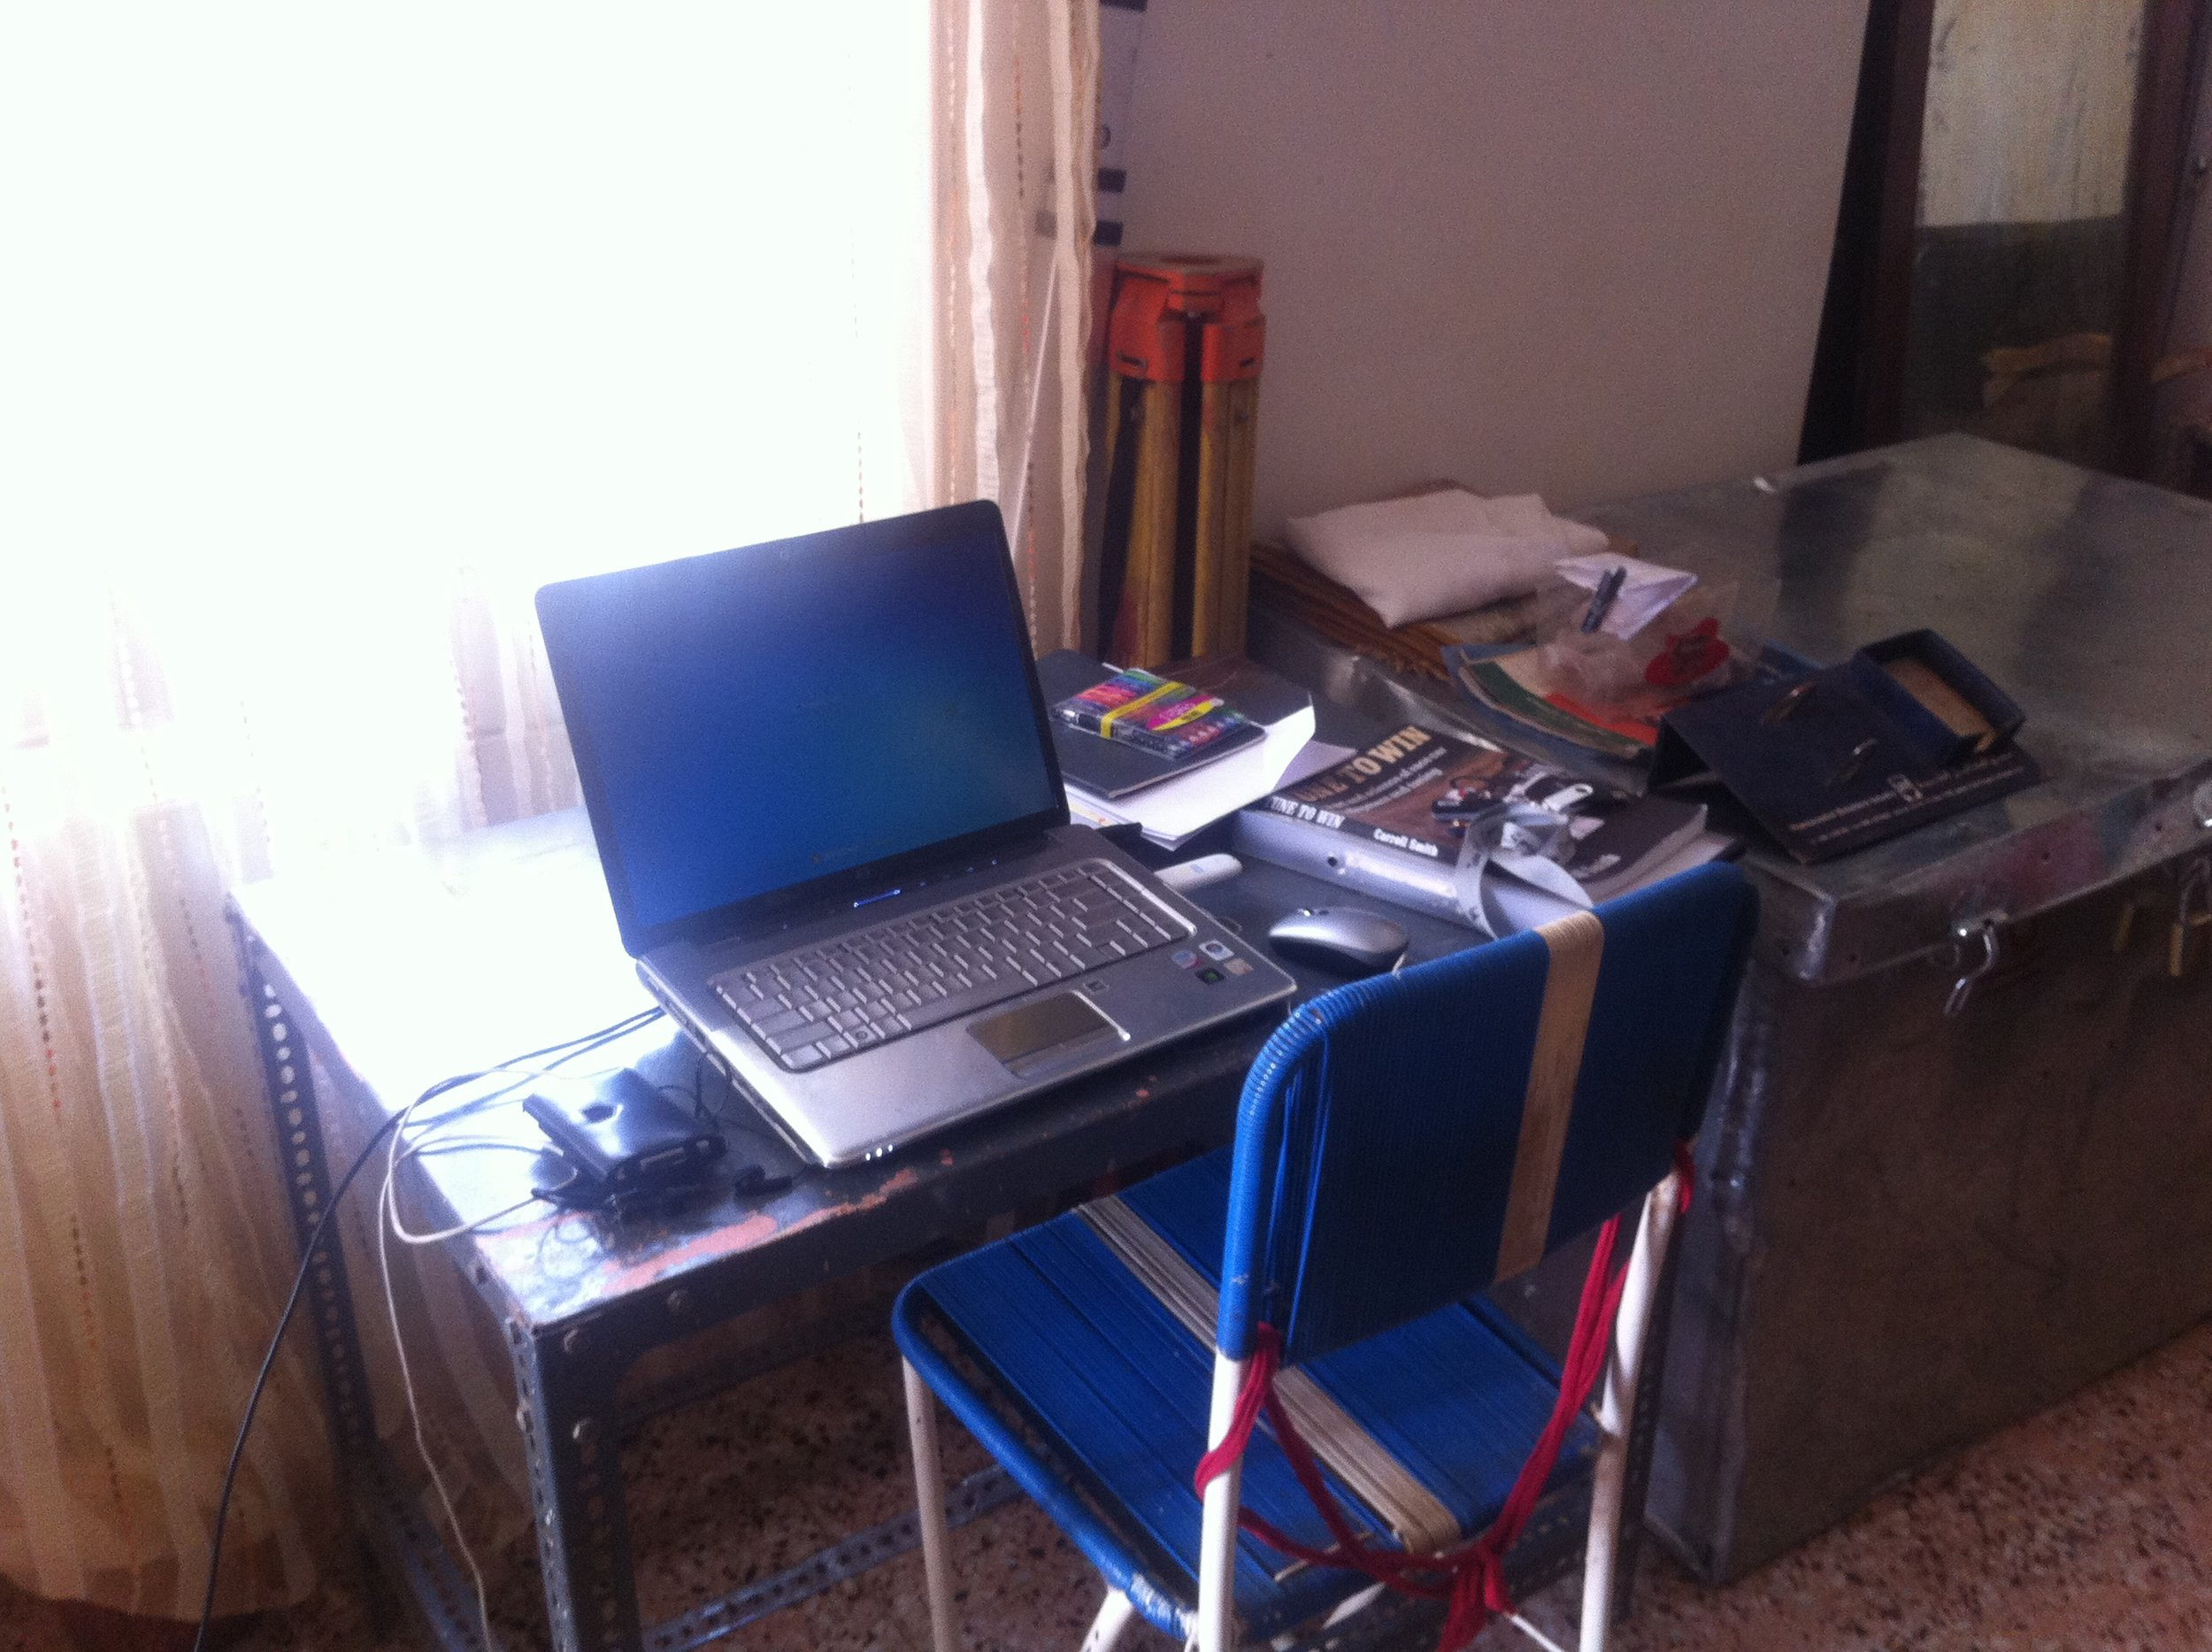 Where I did my blogging and studying while living in Sudan, circa 2012.